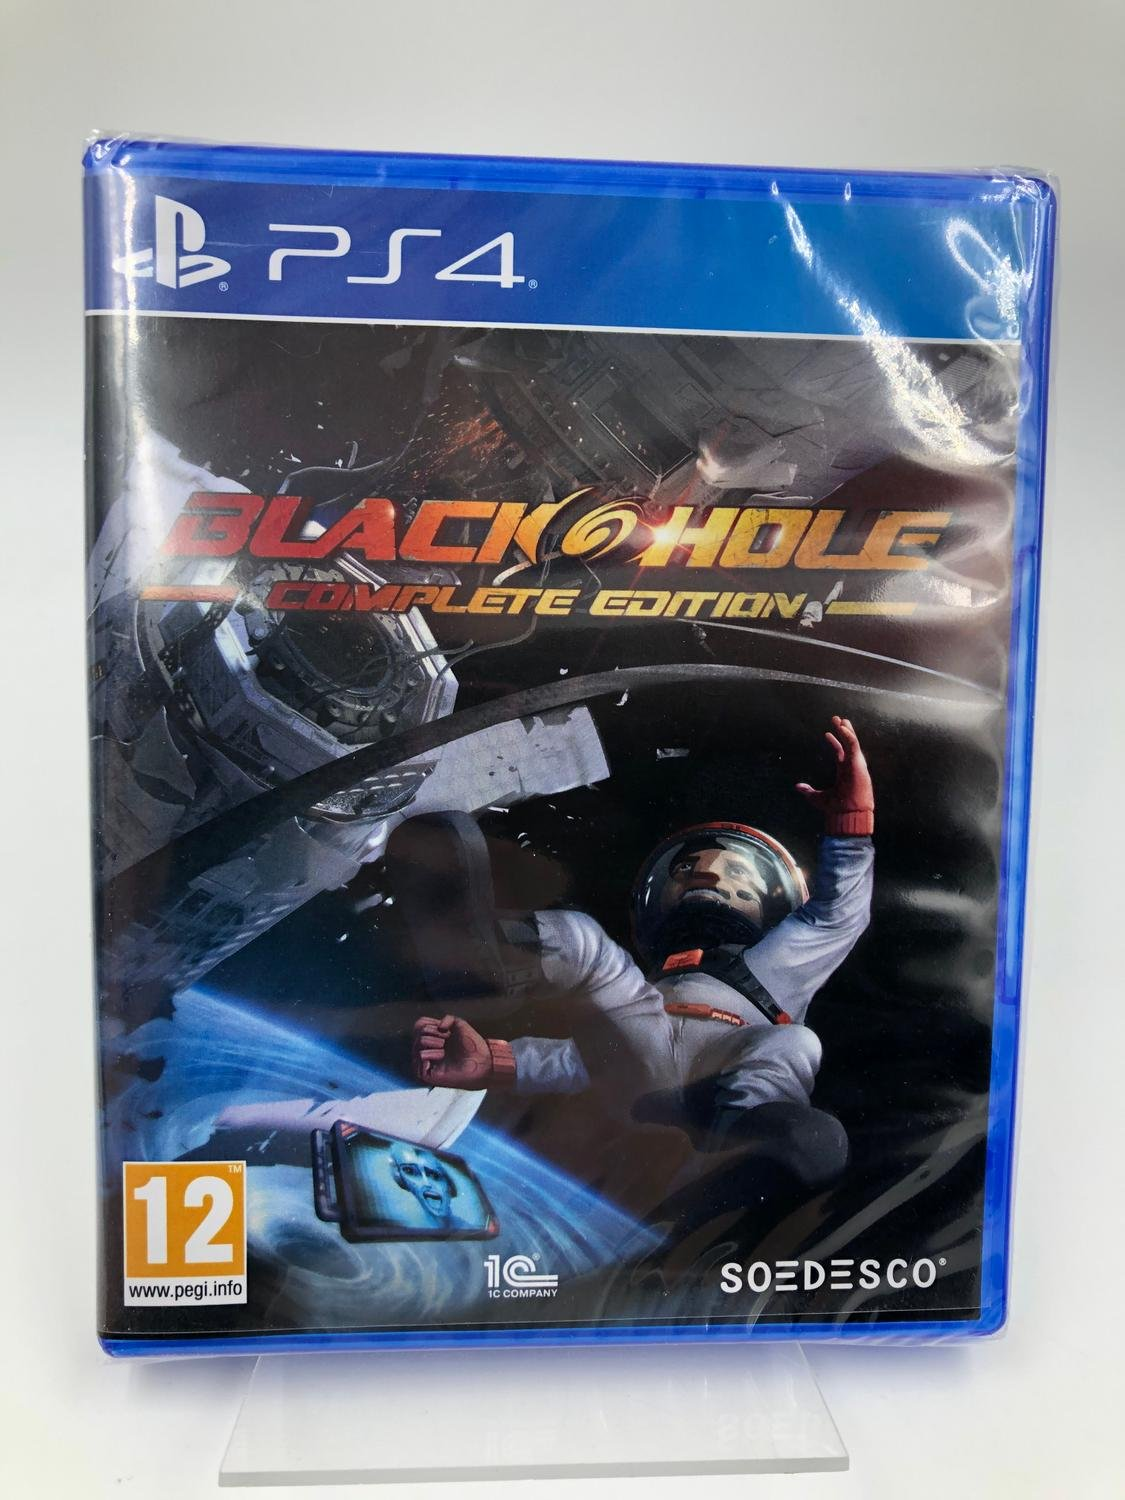 Black Hole Complete Edition Playstation 4 PS4 Nytt Inplastat